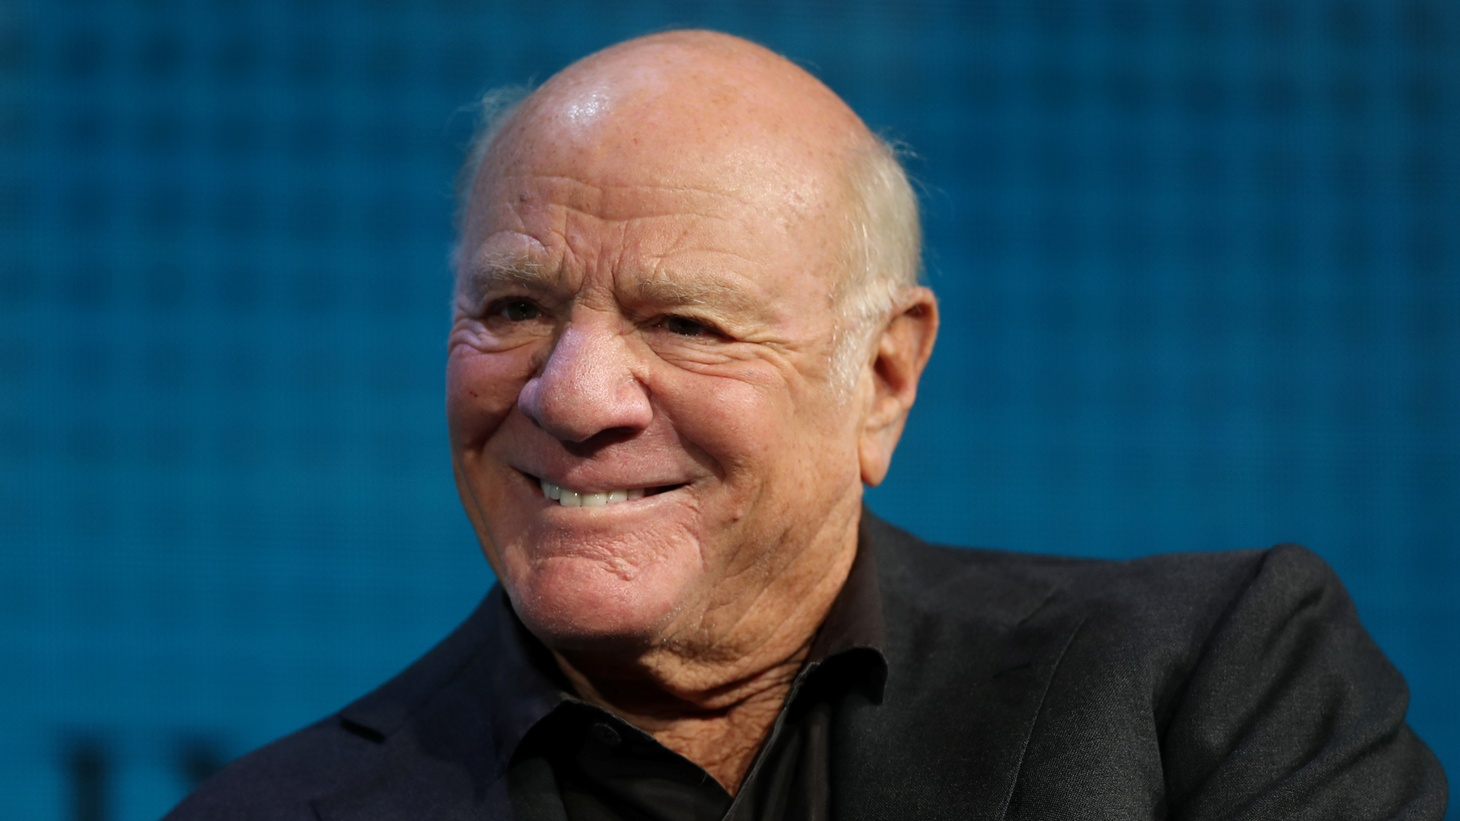 Barry Diller, Chairman and Senior Executive of IAC/InterActiveCorp and Expedia, Inc., attends the Wall Street Journal Digital Conference in Laguna Beach, California, U.S., October 17, 2017.